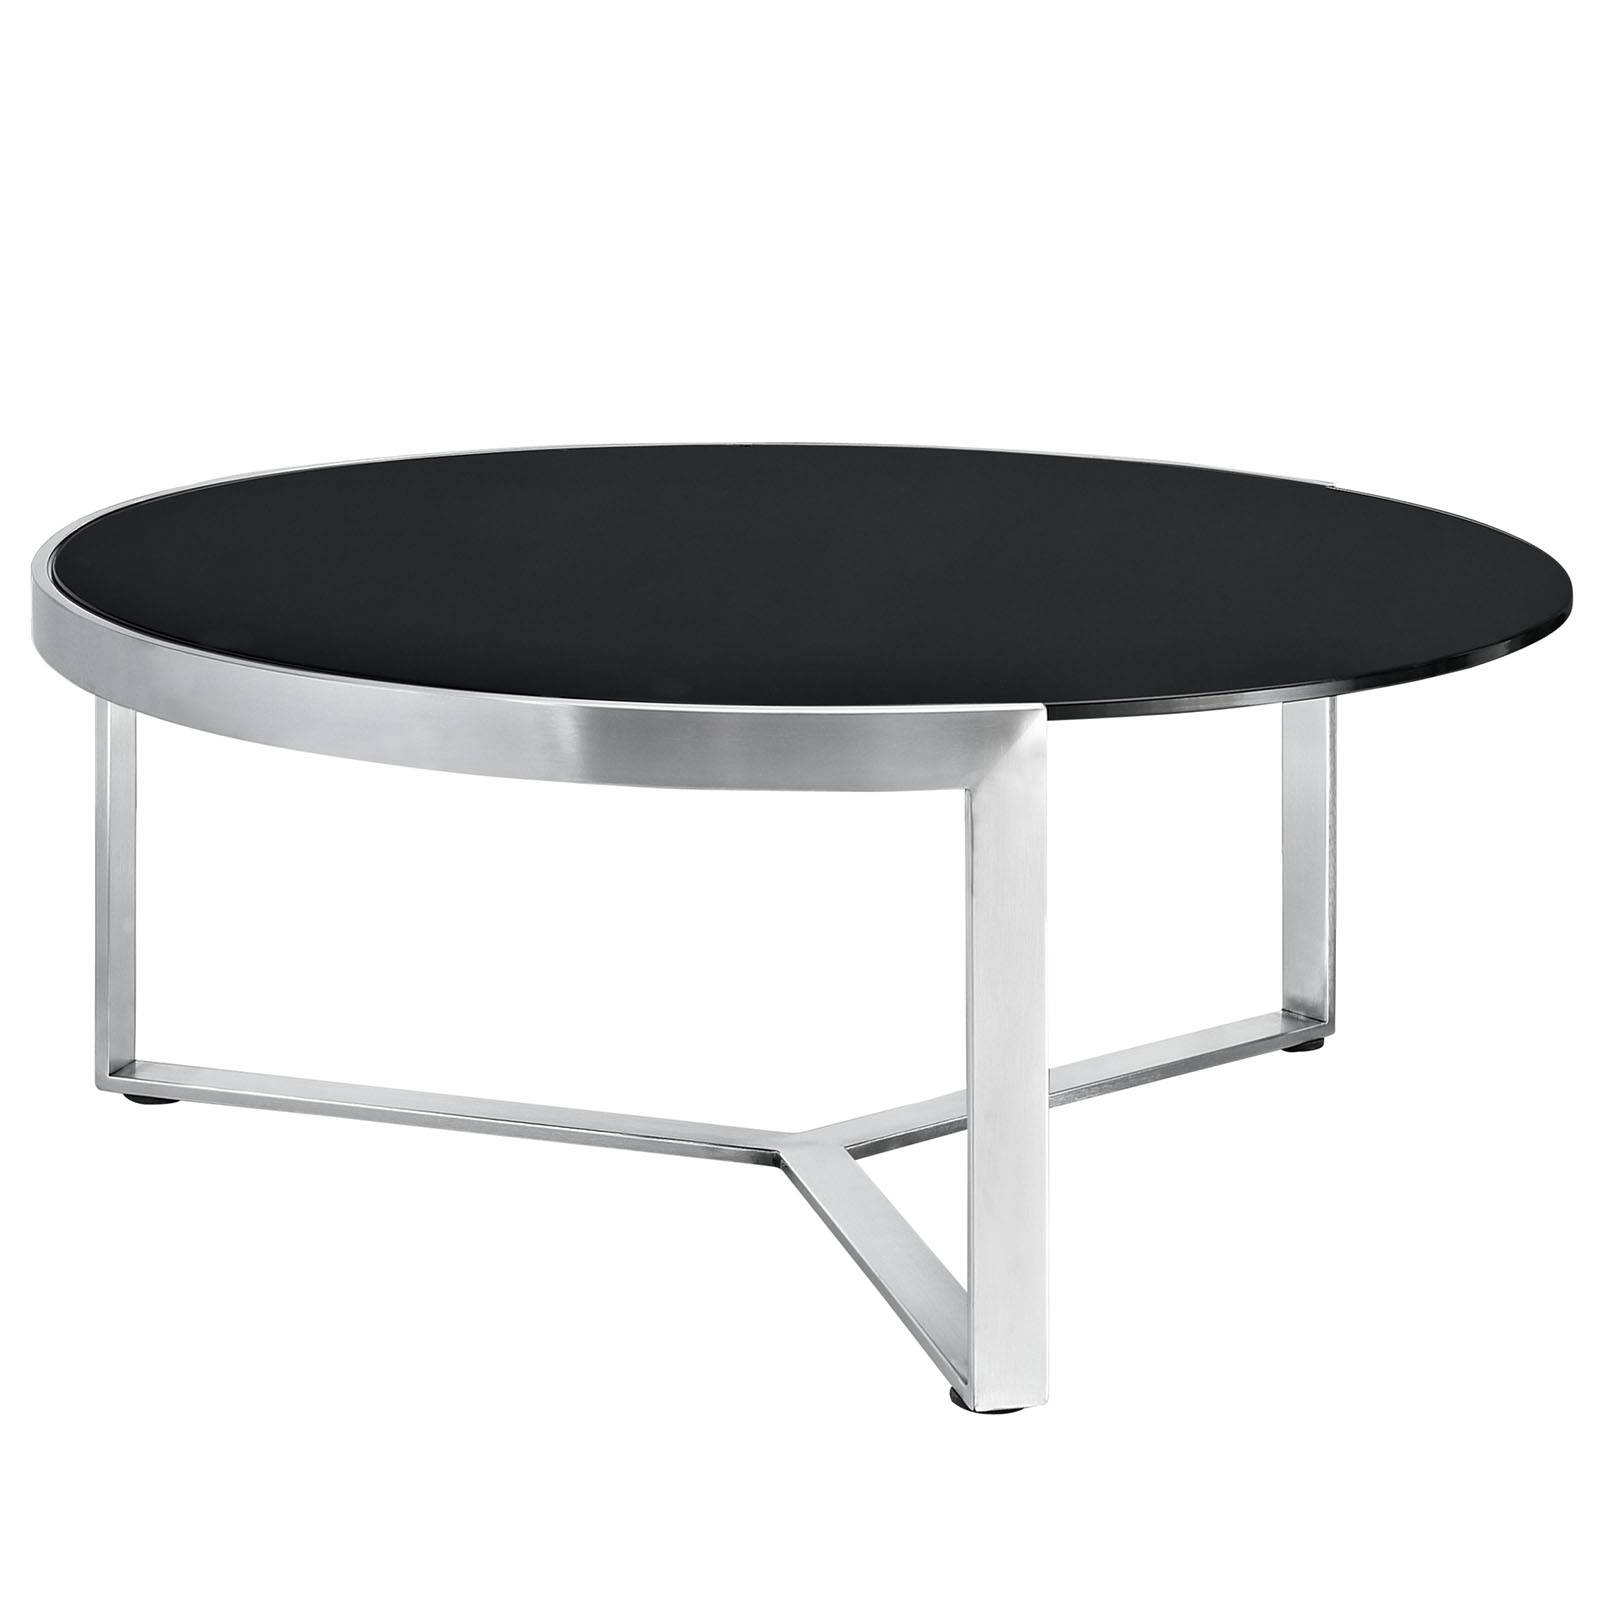 Black Glass Coffee Table With Black Legs | Coffee Tables Decoration pertaining to Oval Black Glass Coffee Tables (Image 5 of 30)